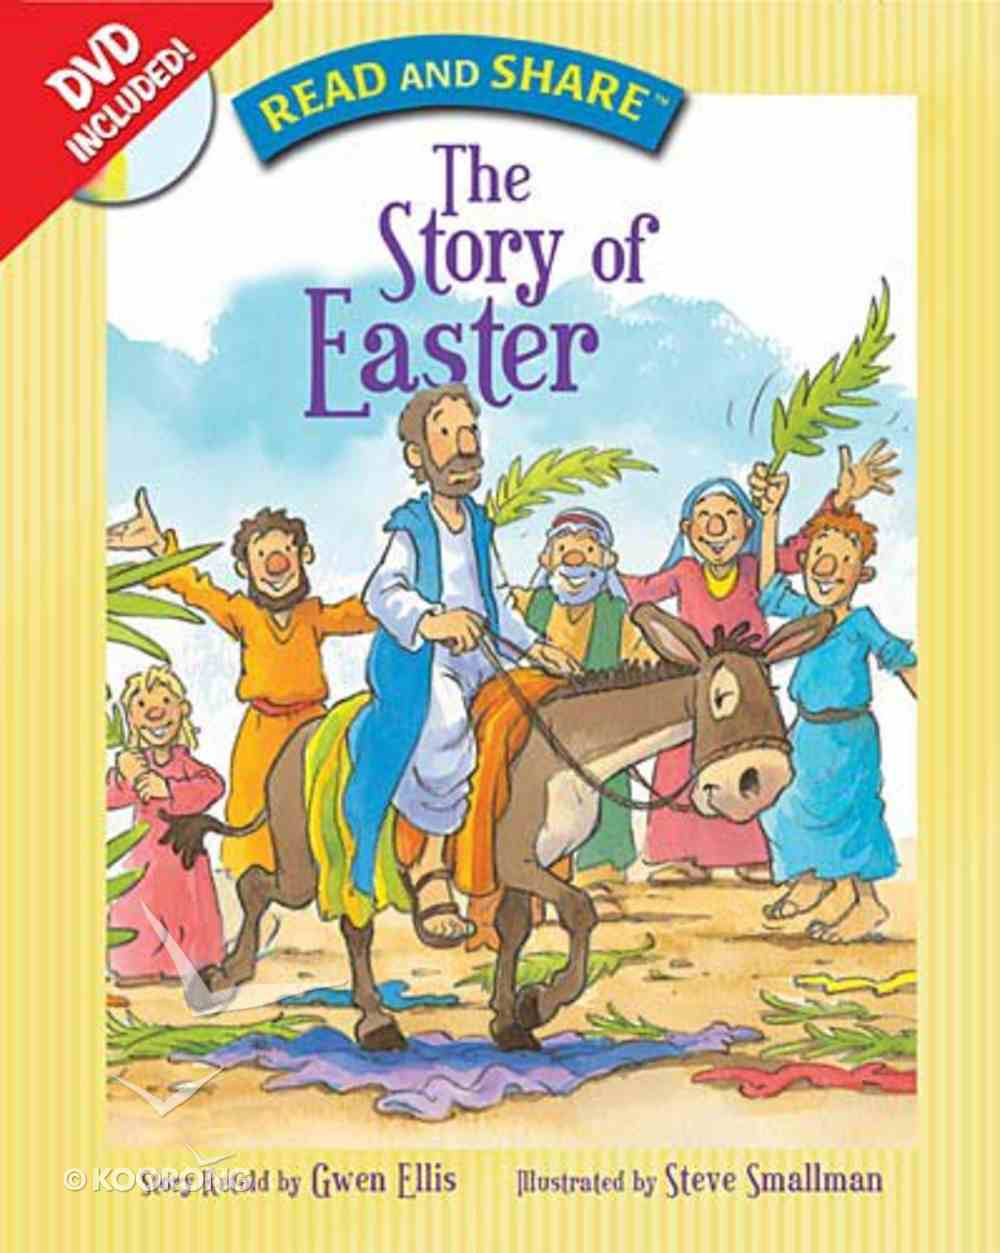 The Story of Easter (With DVD) (Read And Share Series) Hardback